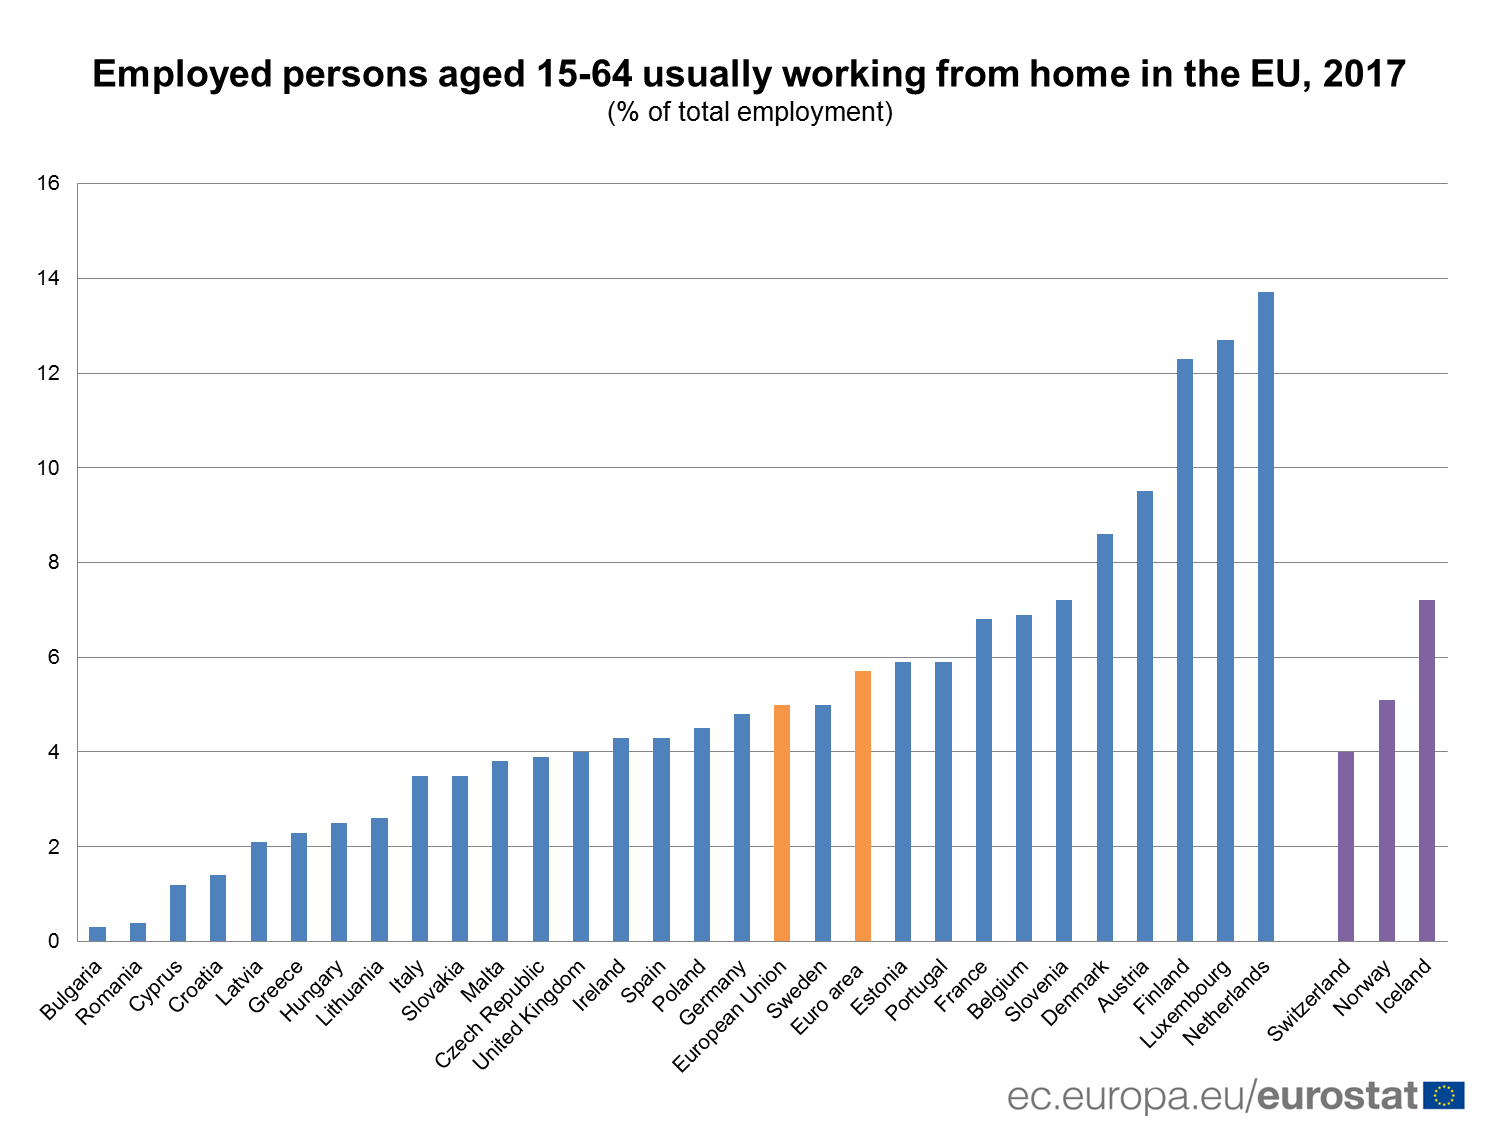 Employed persons aged 15-64 usually working from home in the EU, 2017 (% of total employment)